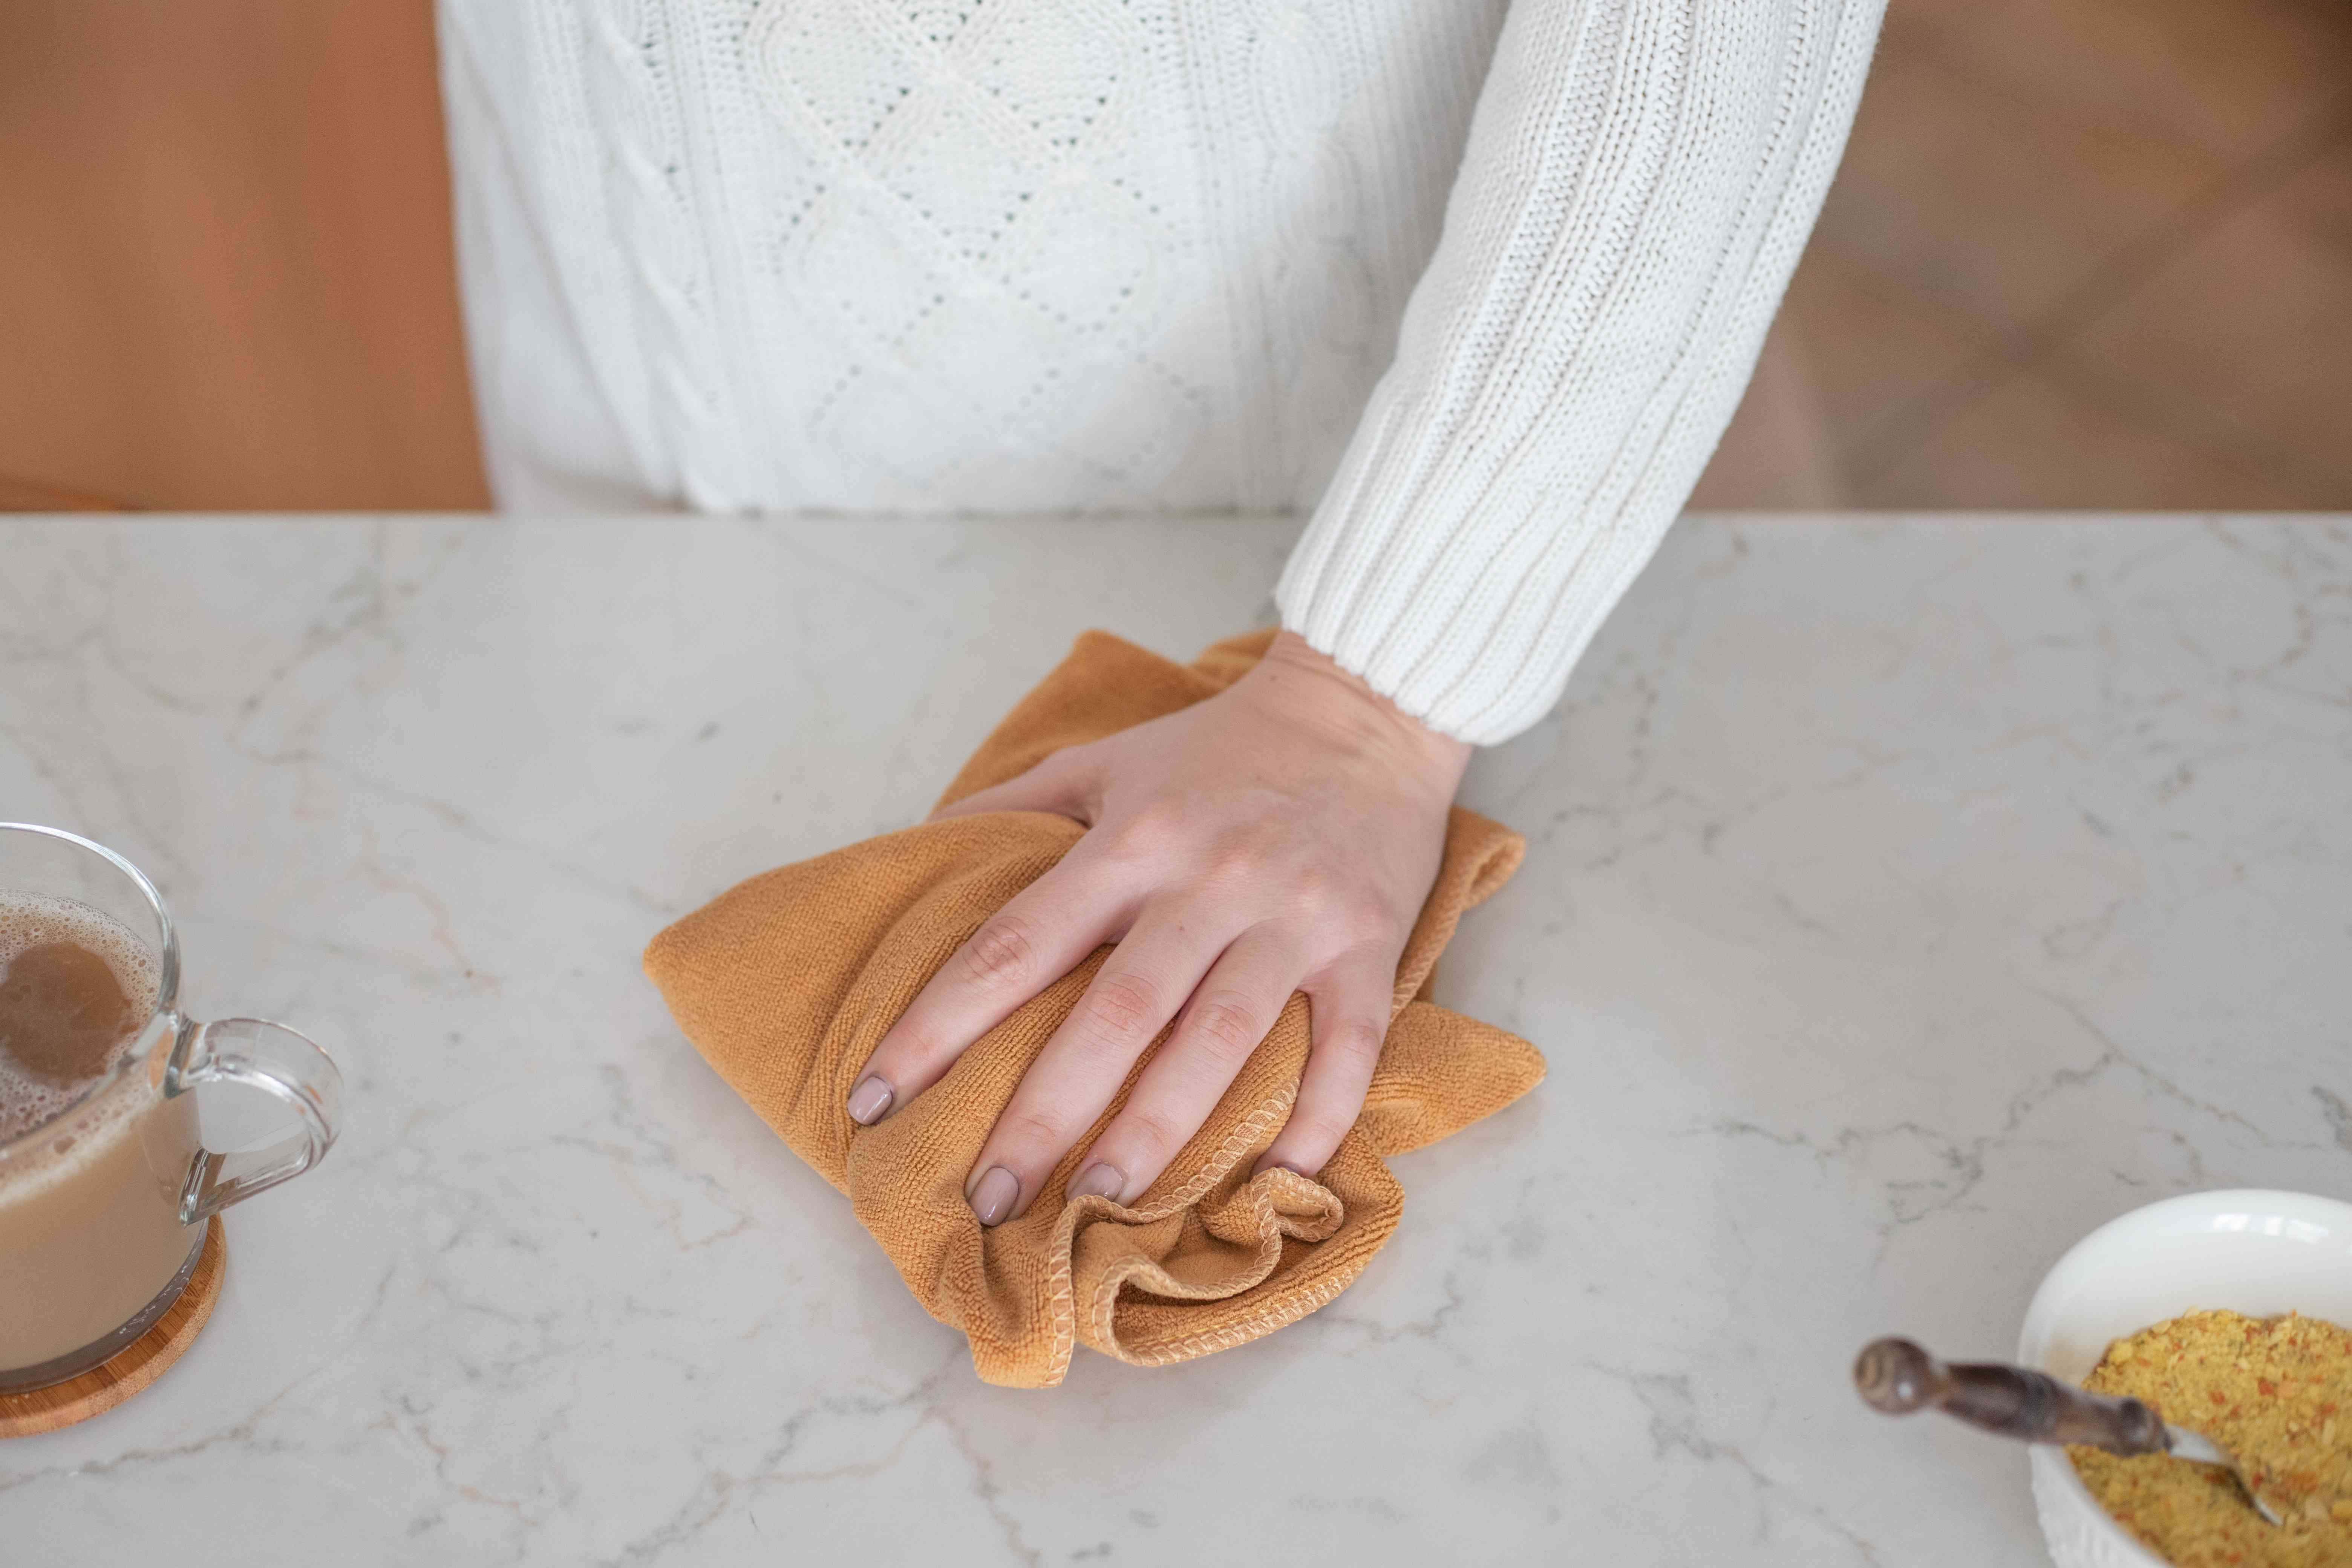 hands scrub kitchen with towel near cup of tea and food